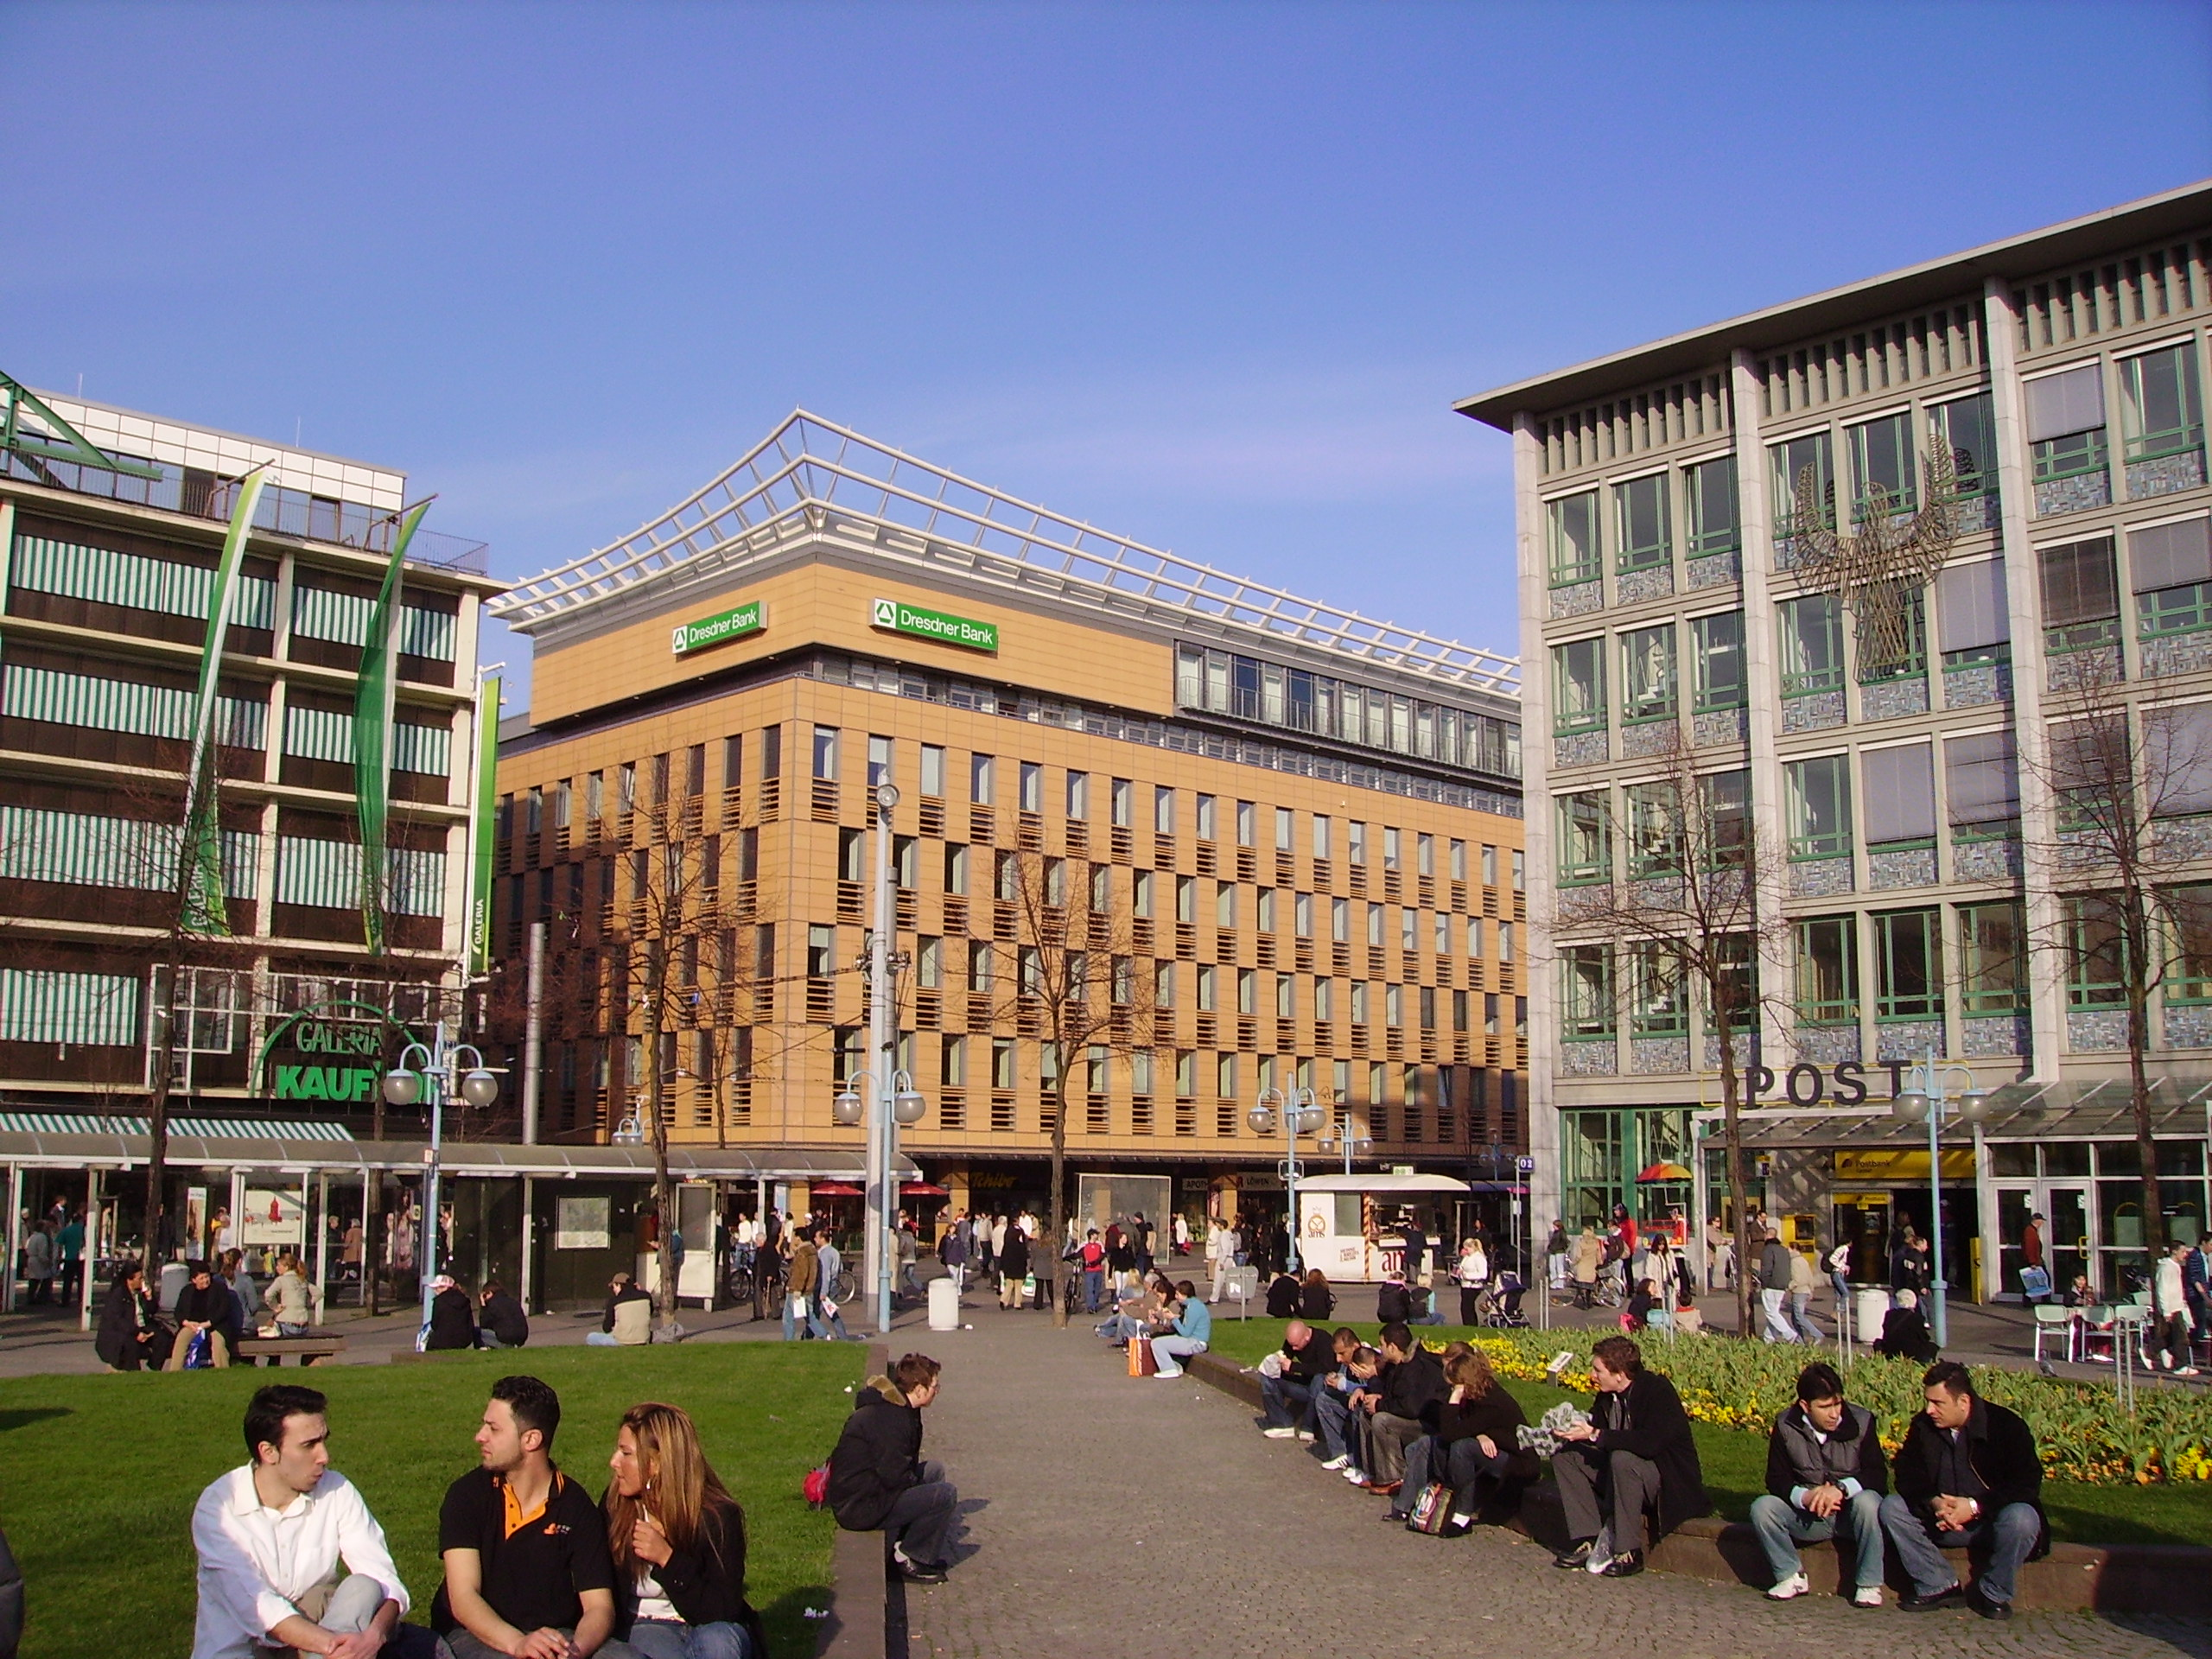 Mannheim Germany  City pictures : Original file ‎ 2,560 × 1,920 pixels, file size: 1.18 MB, MIME ...